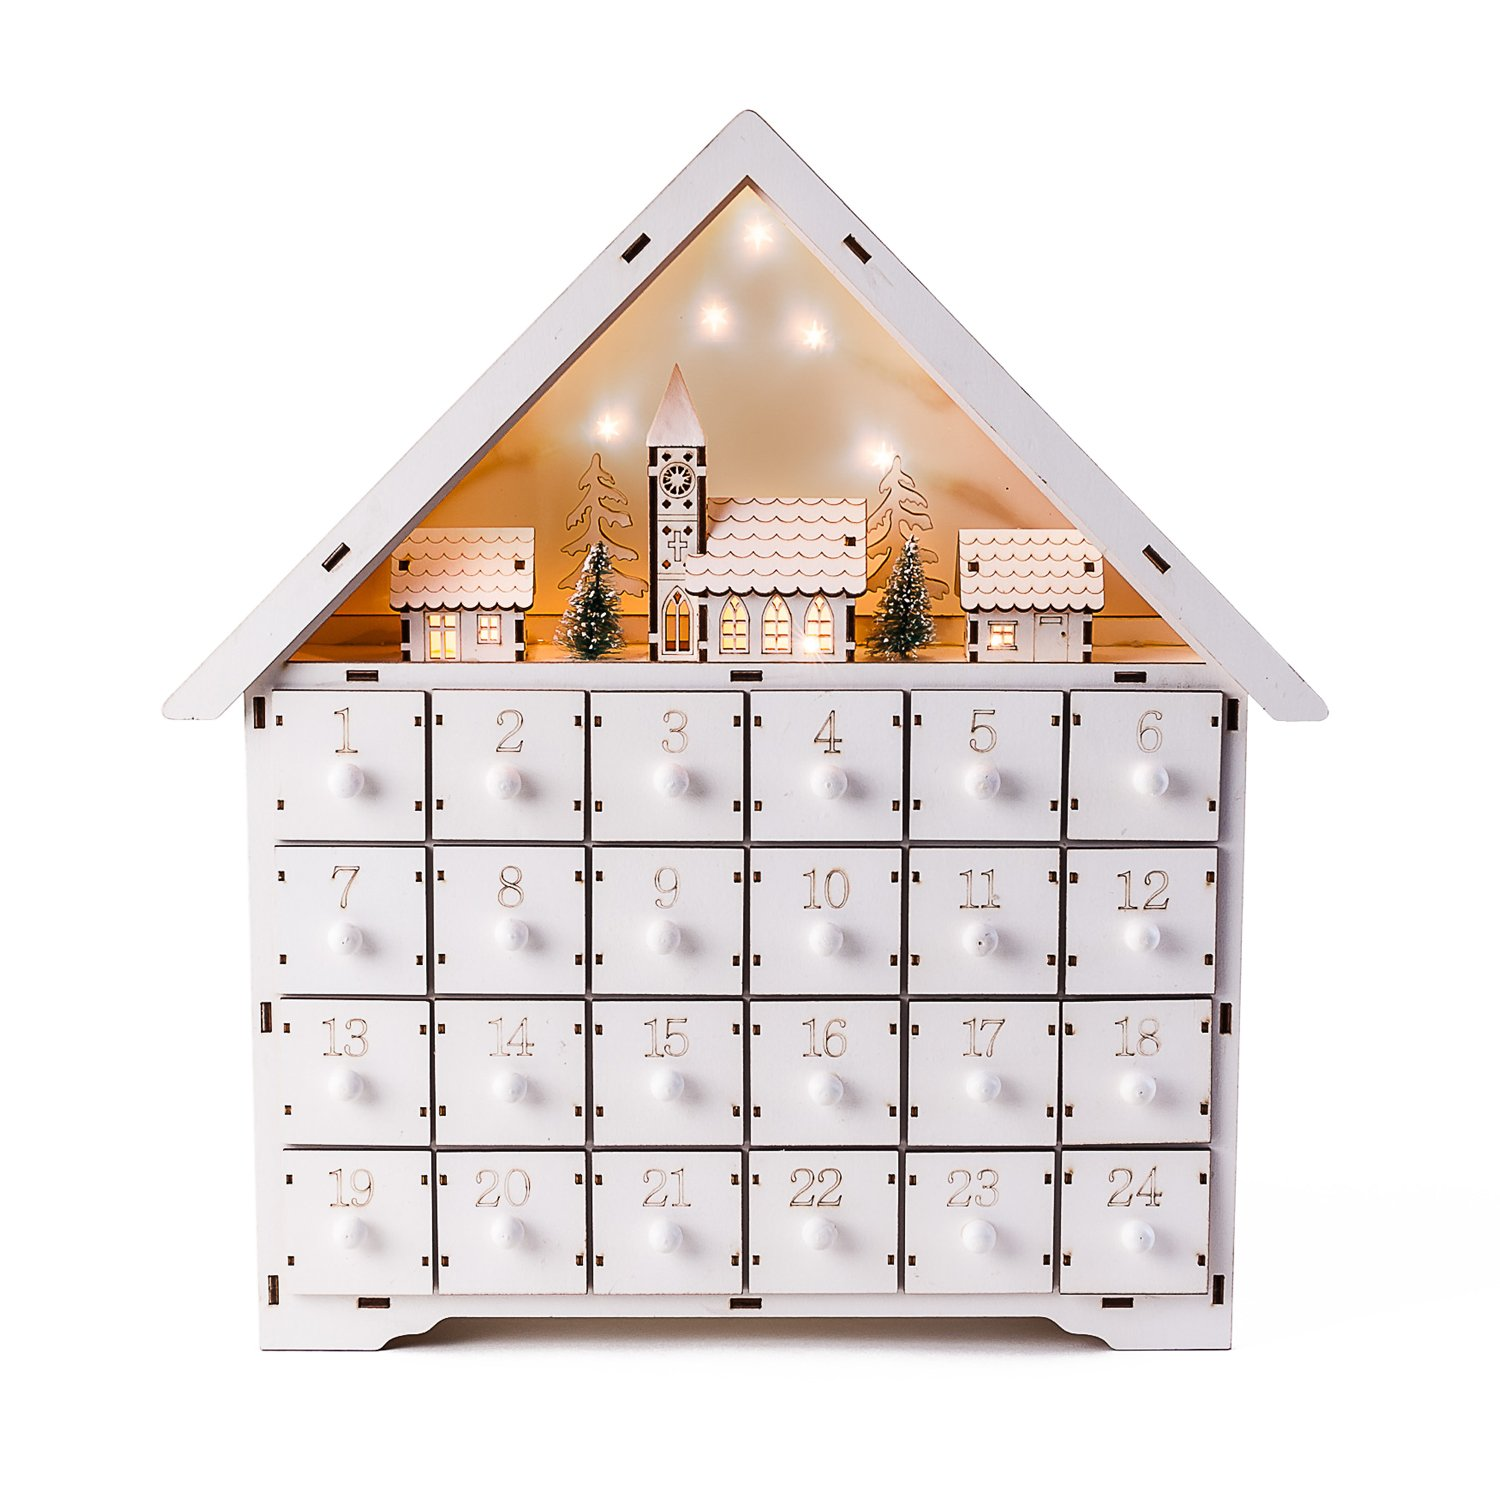 Christmas Wood White Alpine House Lighted Scene Advent Calender w/Drawers 180 Degrees CY0030